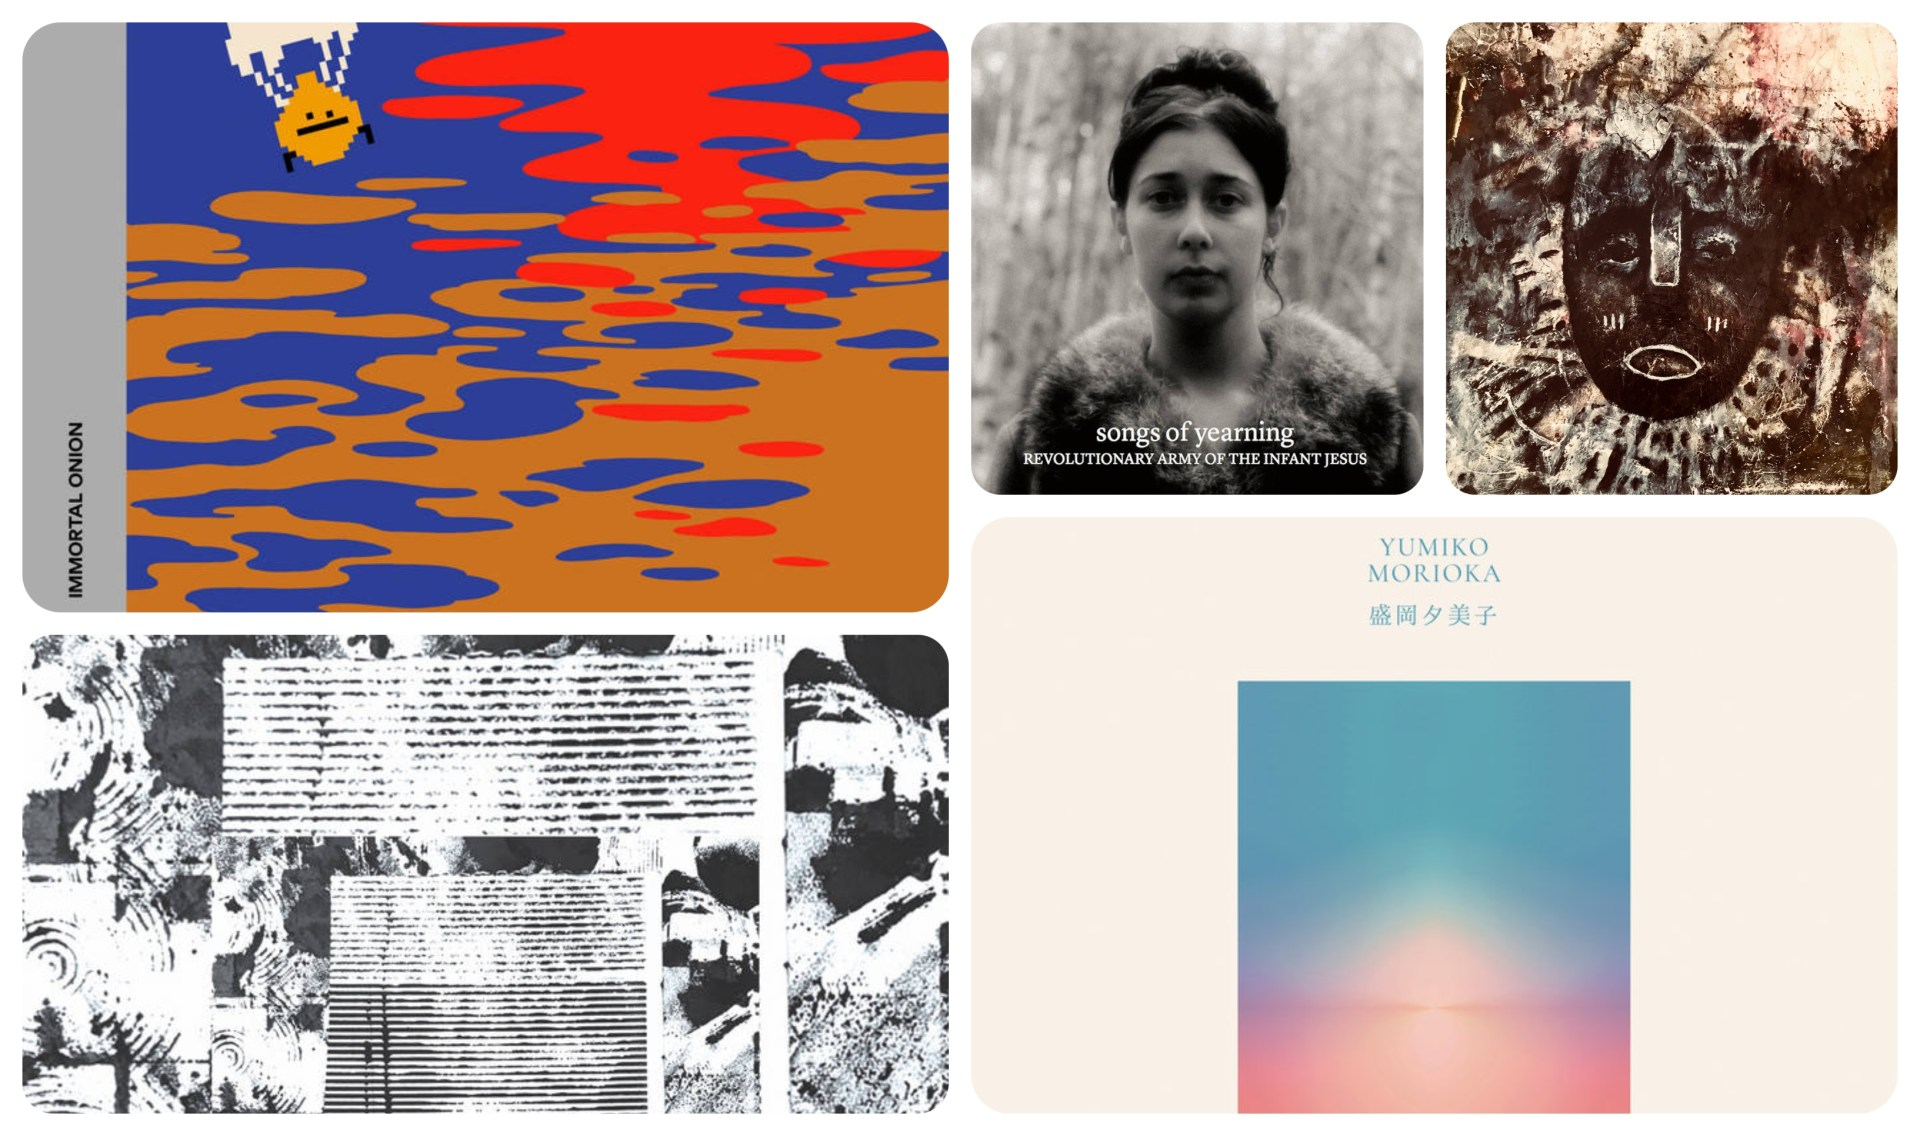 Check out our weekly mini-guide to the best new releases you need to hear.